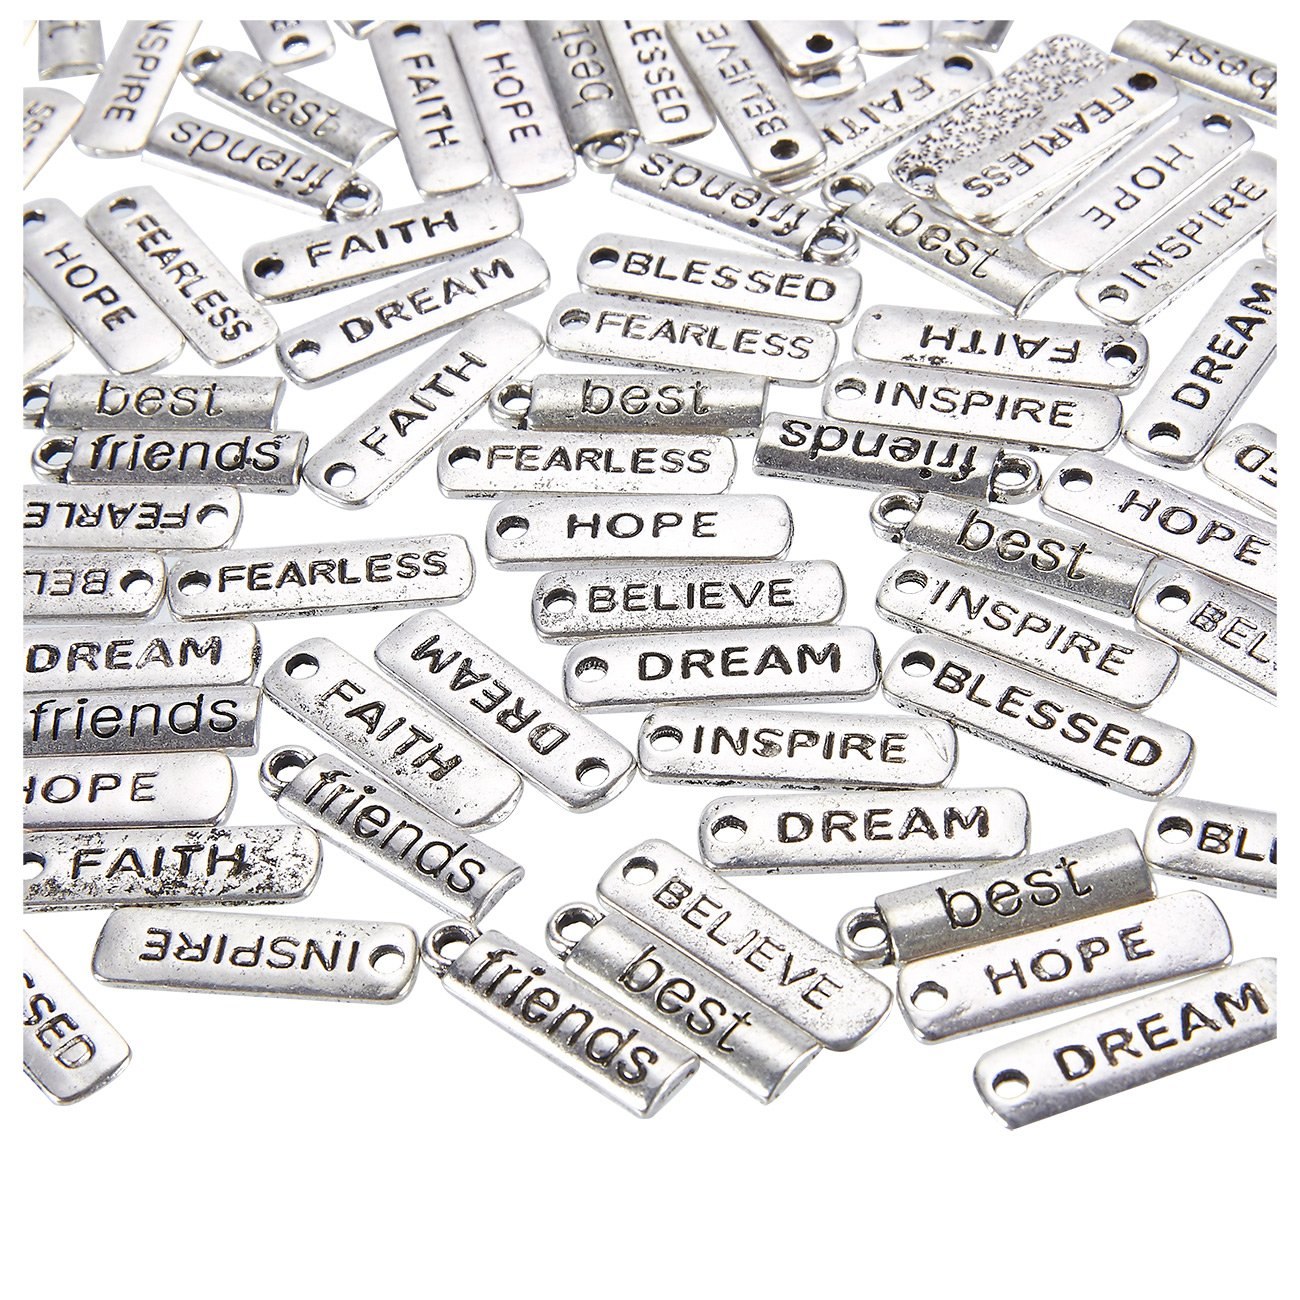 I Can Positivity and Motivation Tag Silver Large Mala or Bracelet Charm 10 Pieces  Base Metal 10x24mm